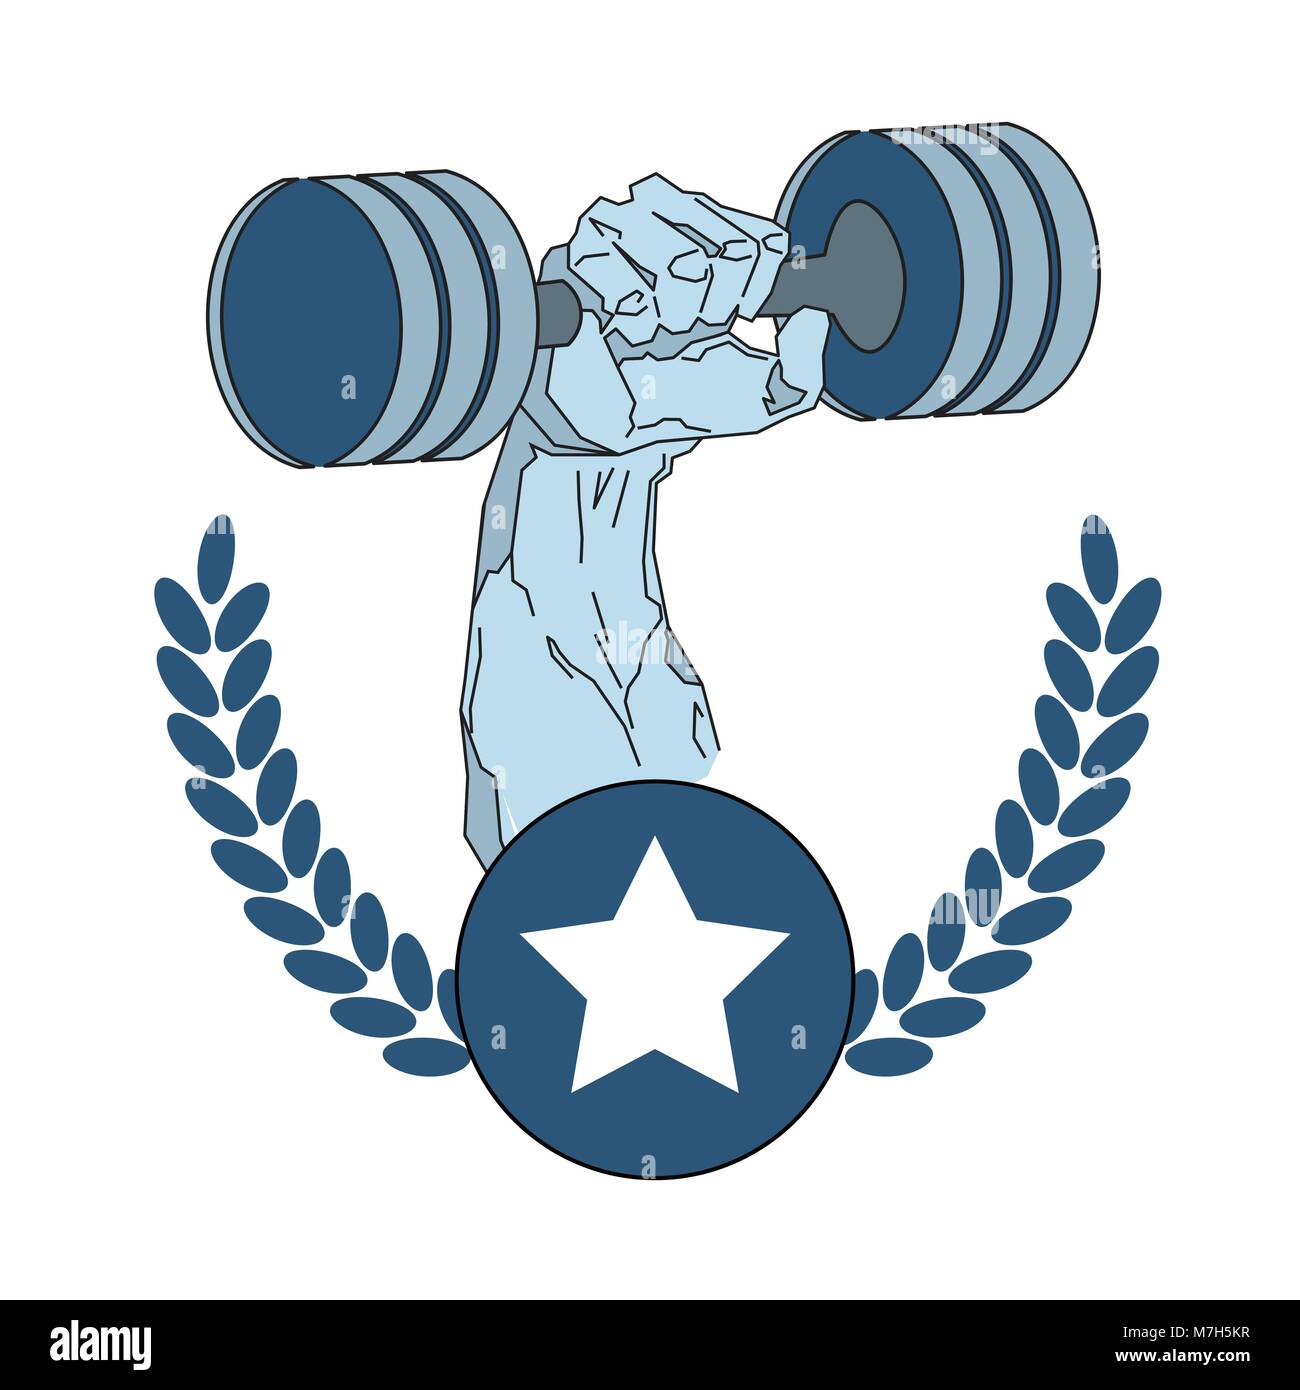 Gym Vector Logo Bodybuilder Bodybuilding Stockfotos & Gym Vector ...